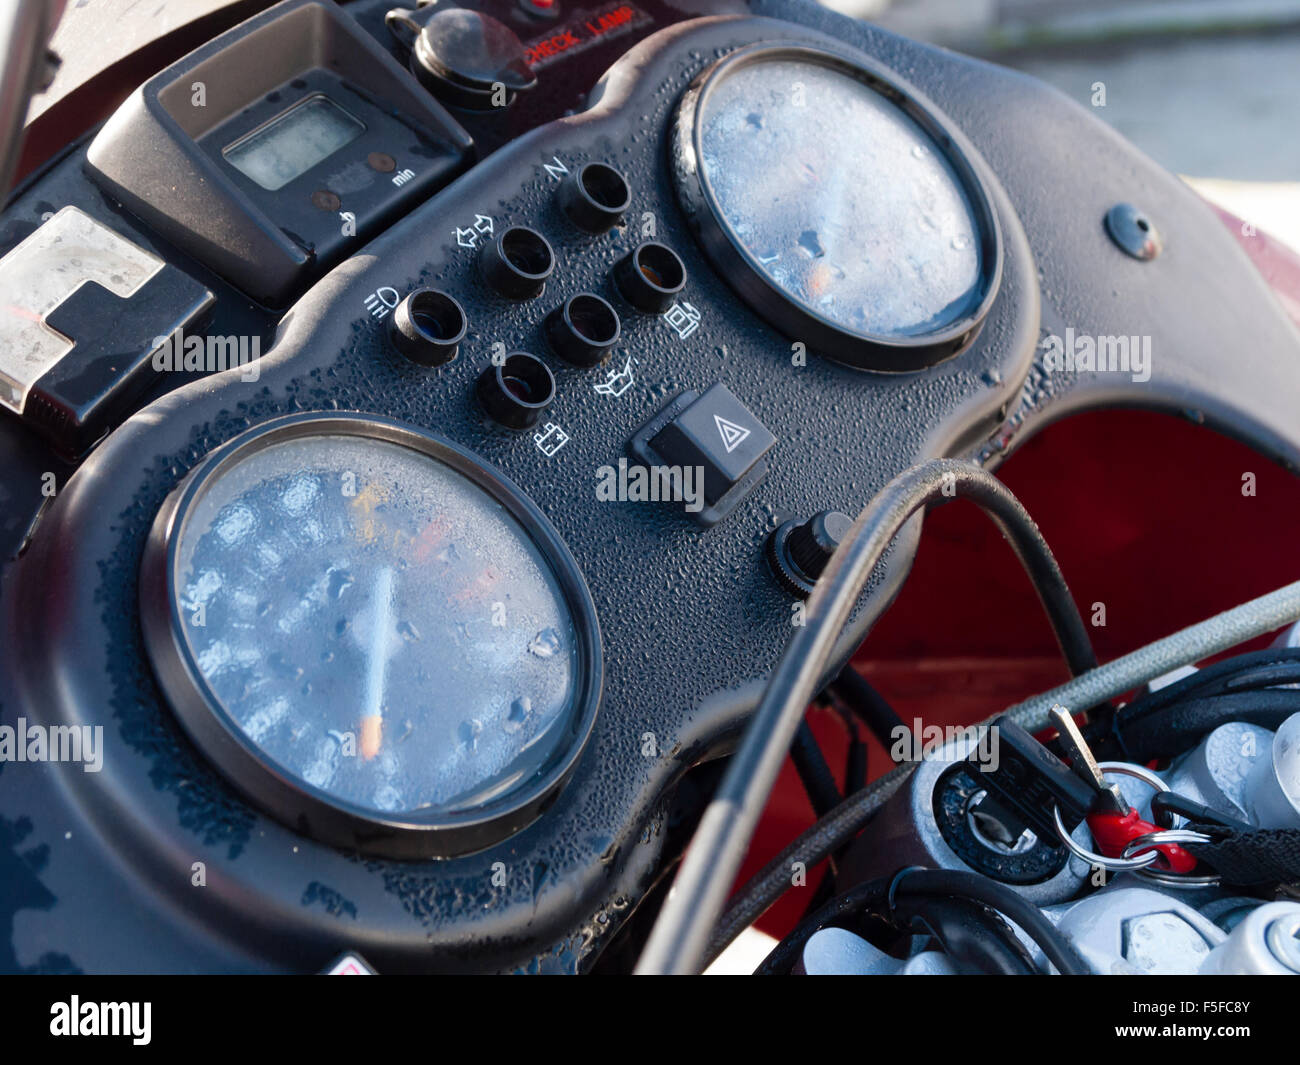 Condensed water on the instrument panel of a classic Moto Guzzi Quota motorbike parked outside in the cold - Stock Image